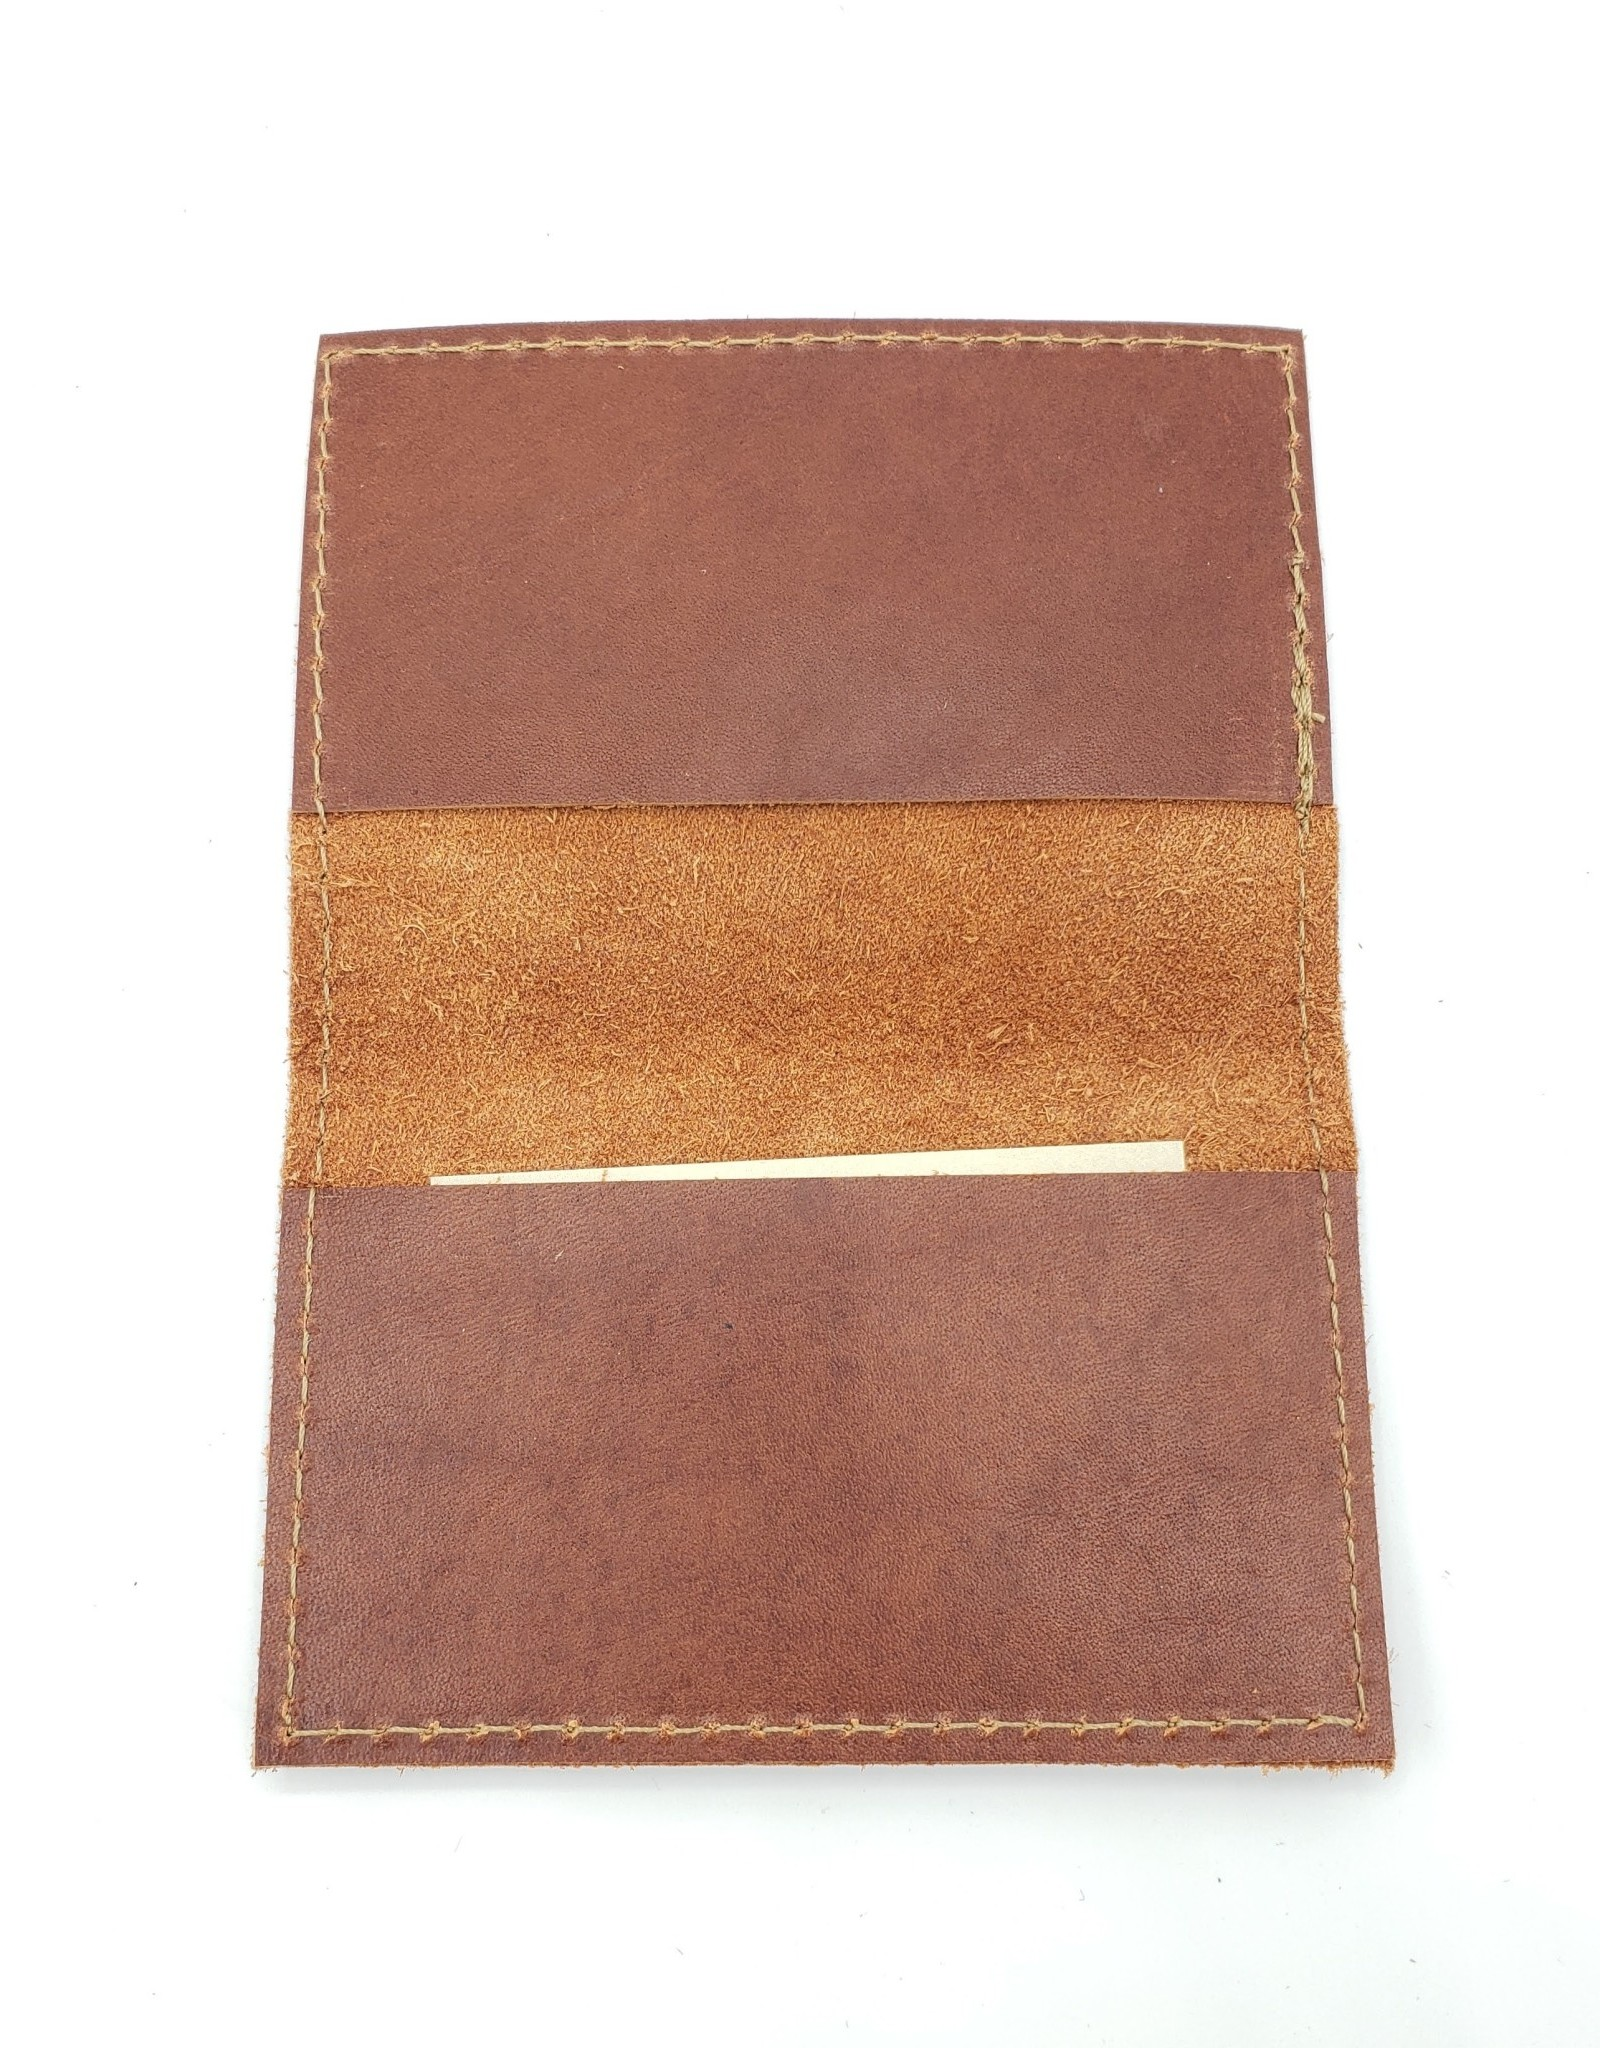 In Blue Handmade Falcon - Leather Fold Over Card Wallet